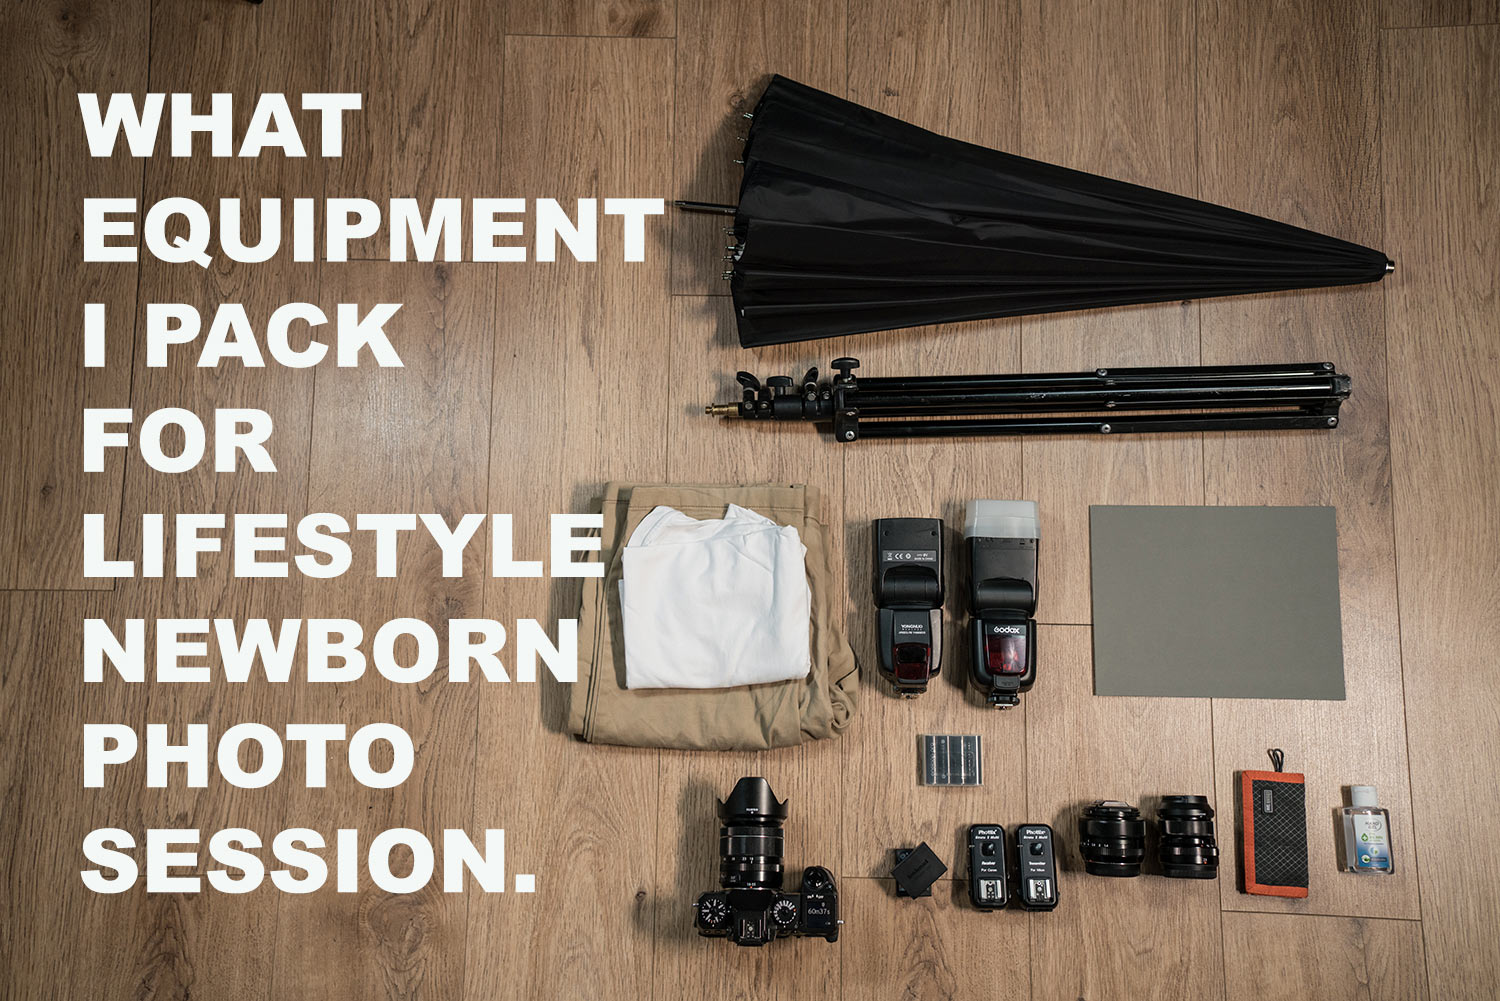 Lifestyle Newborn Photography Tips Guide 11